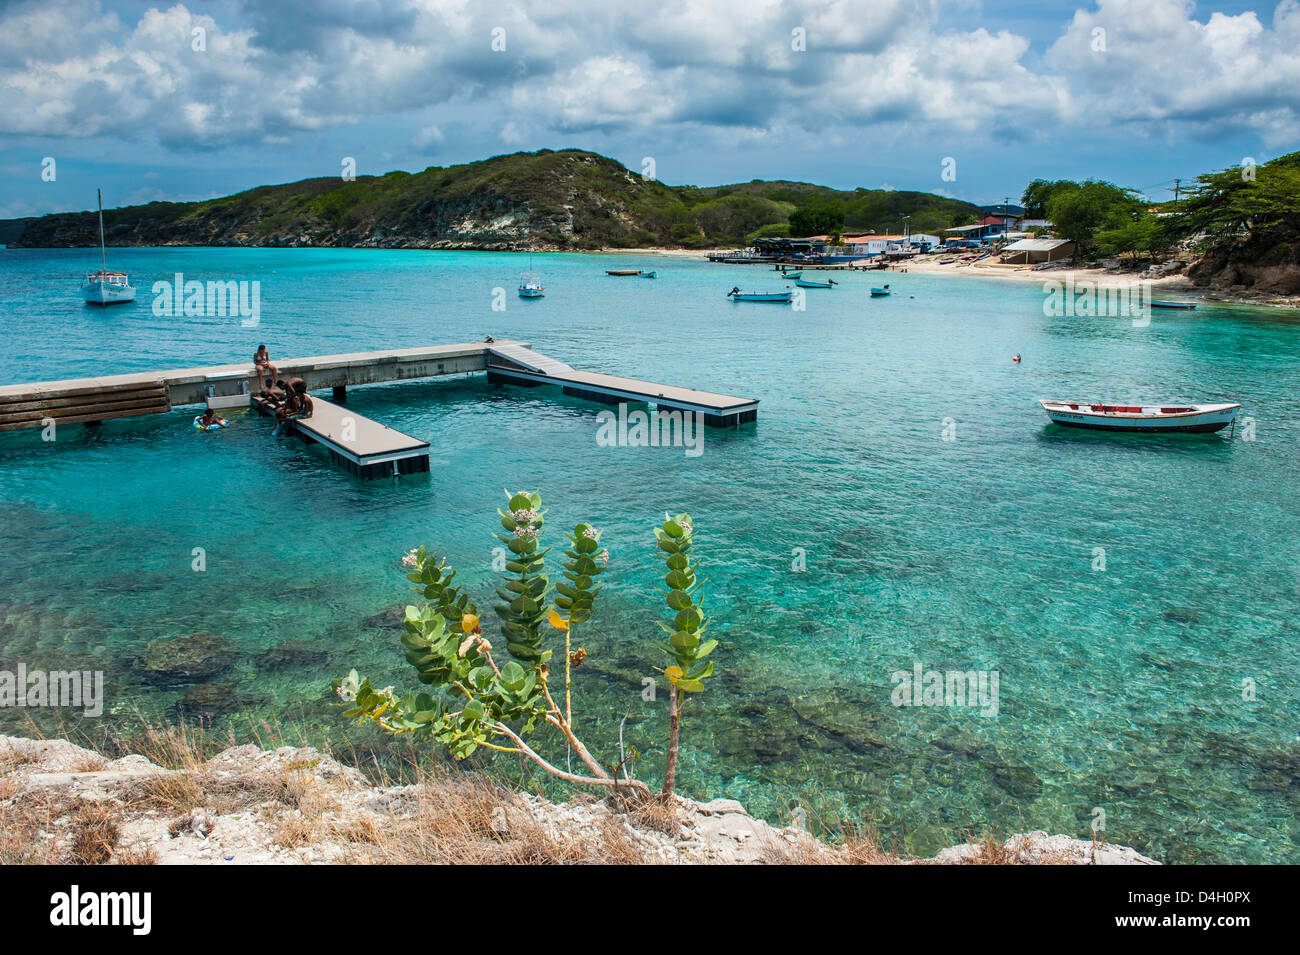 Bay of Kleine St. Michel in Curacao, ABC Islands, Netherlands Antilles, Caribbean - Stock Image